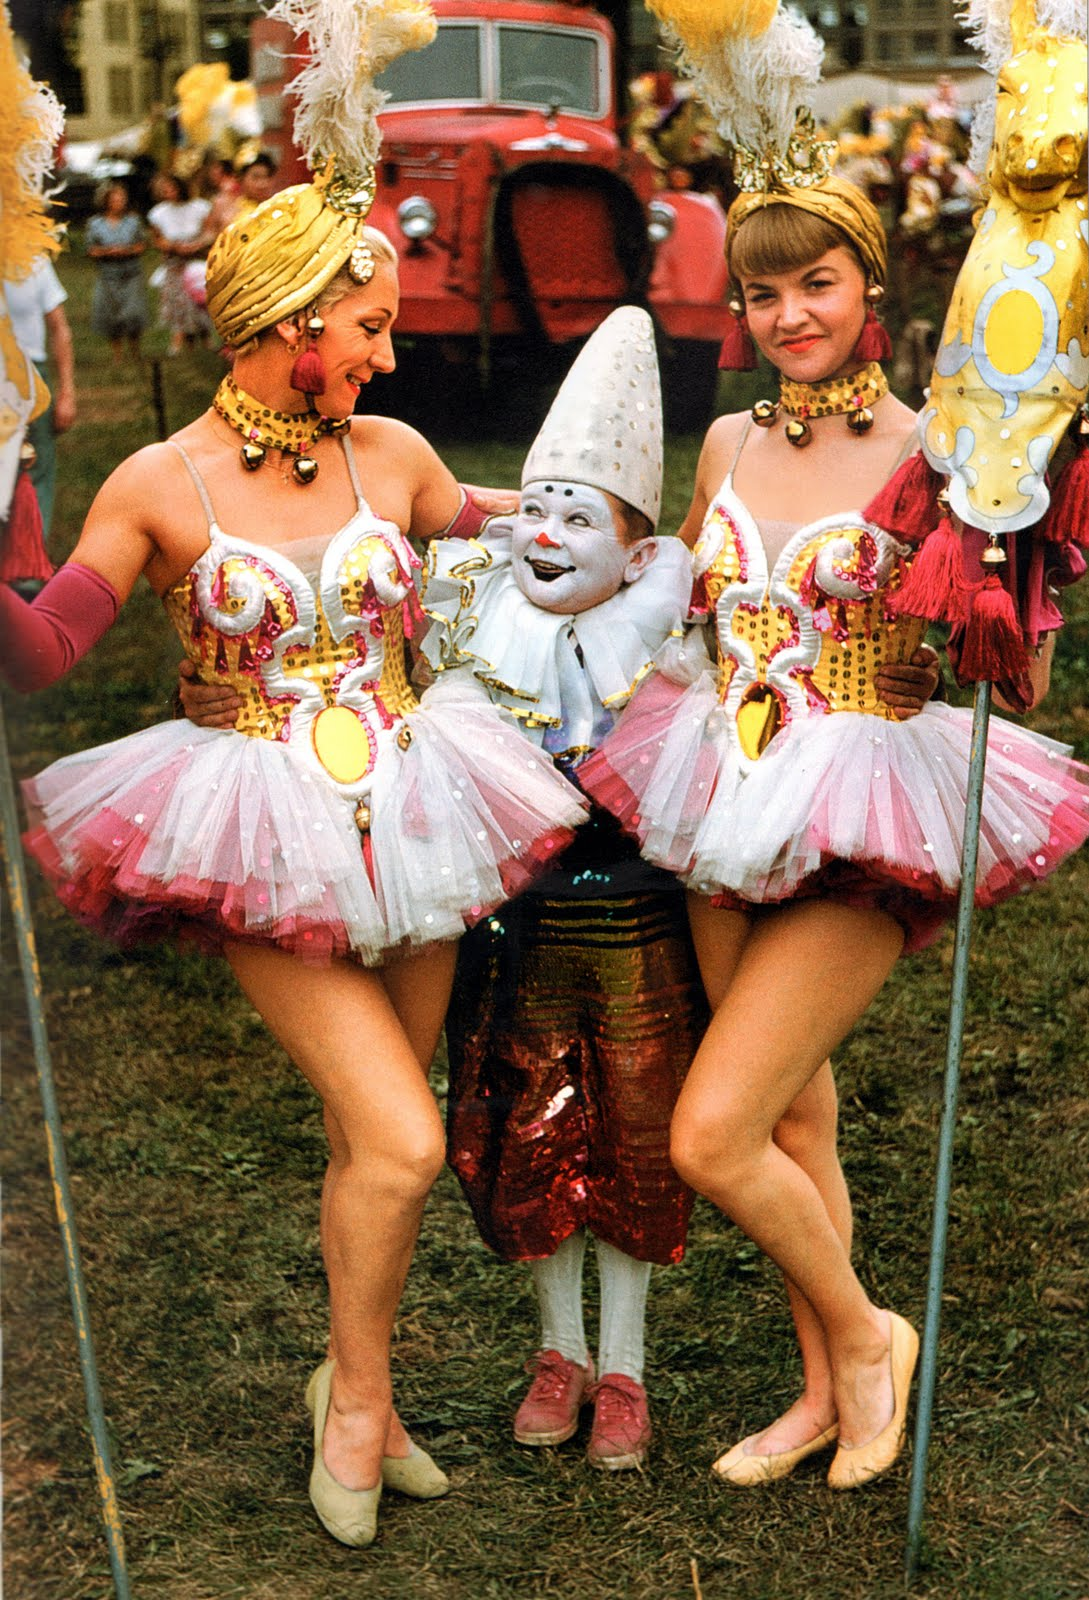 15 Wonderful Color Portrait Photos of Circus Performers From Between the 1940s and 1950s ...